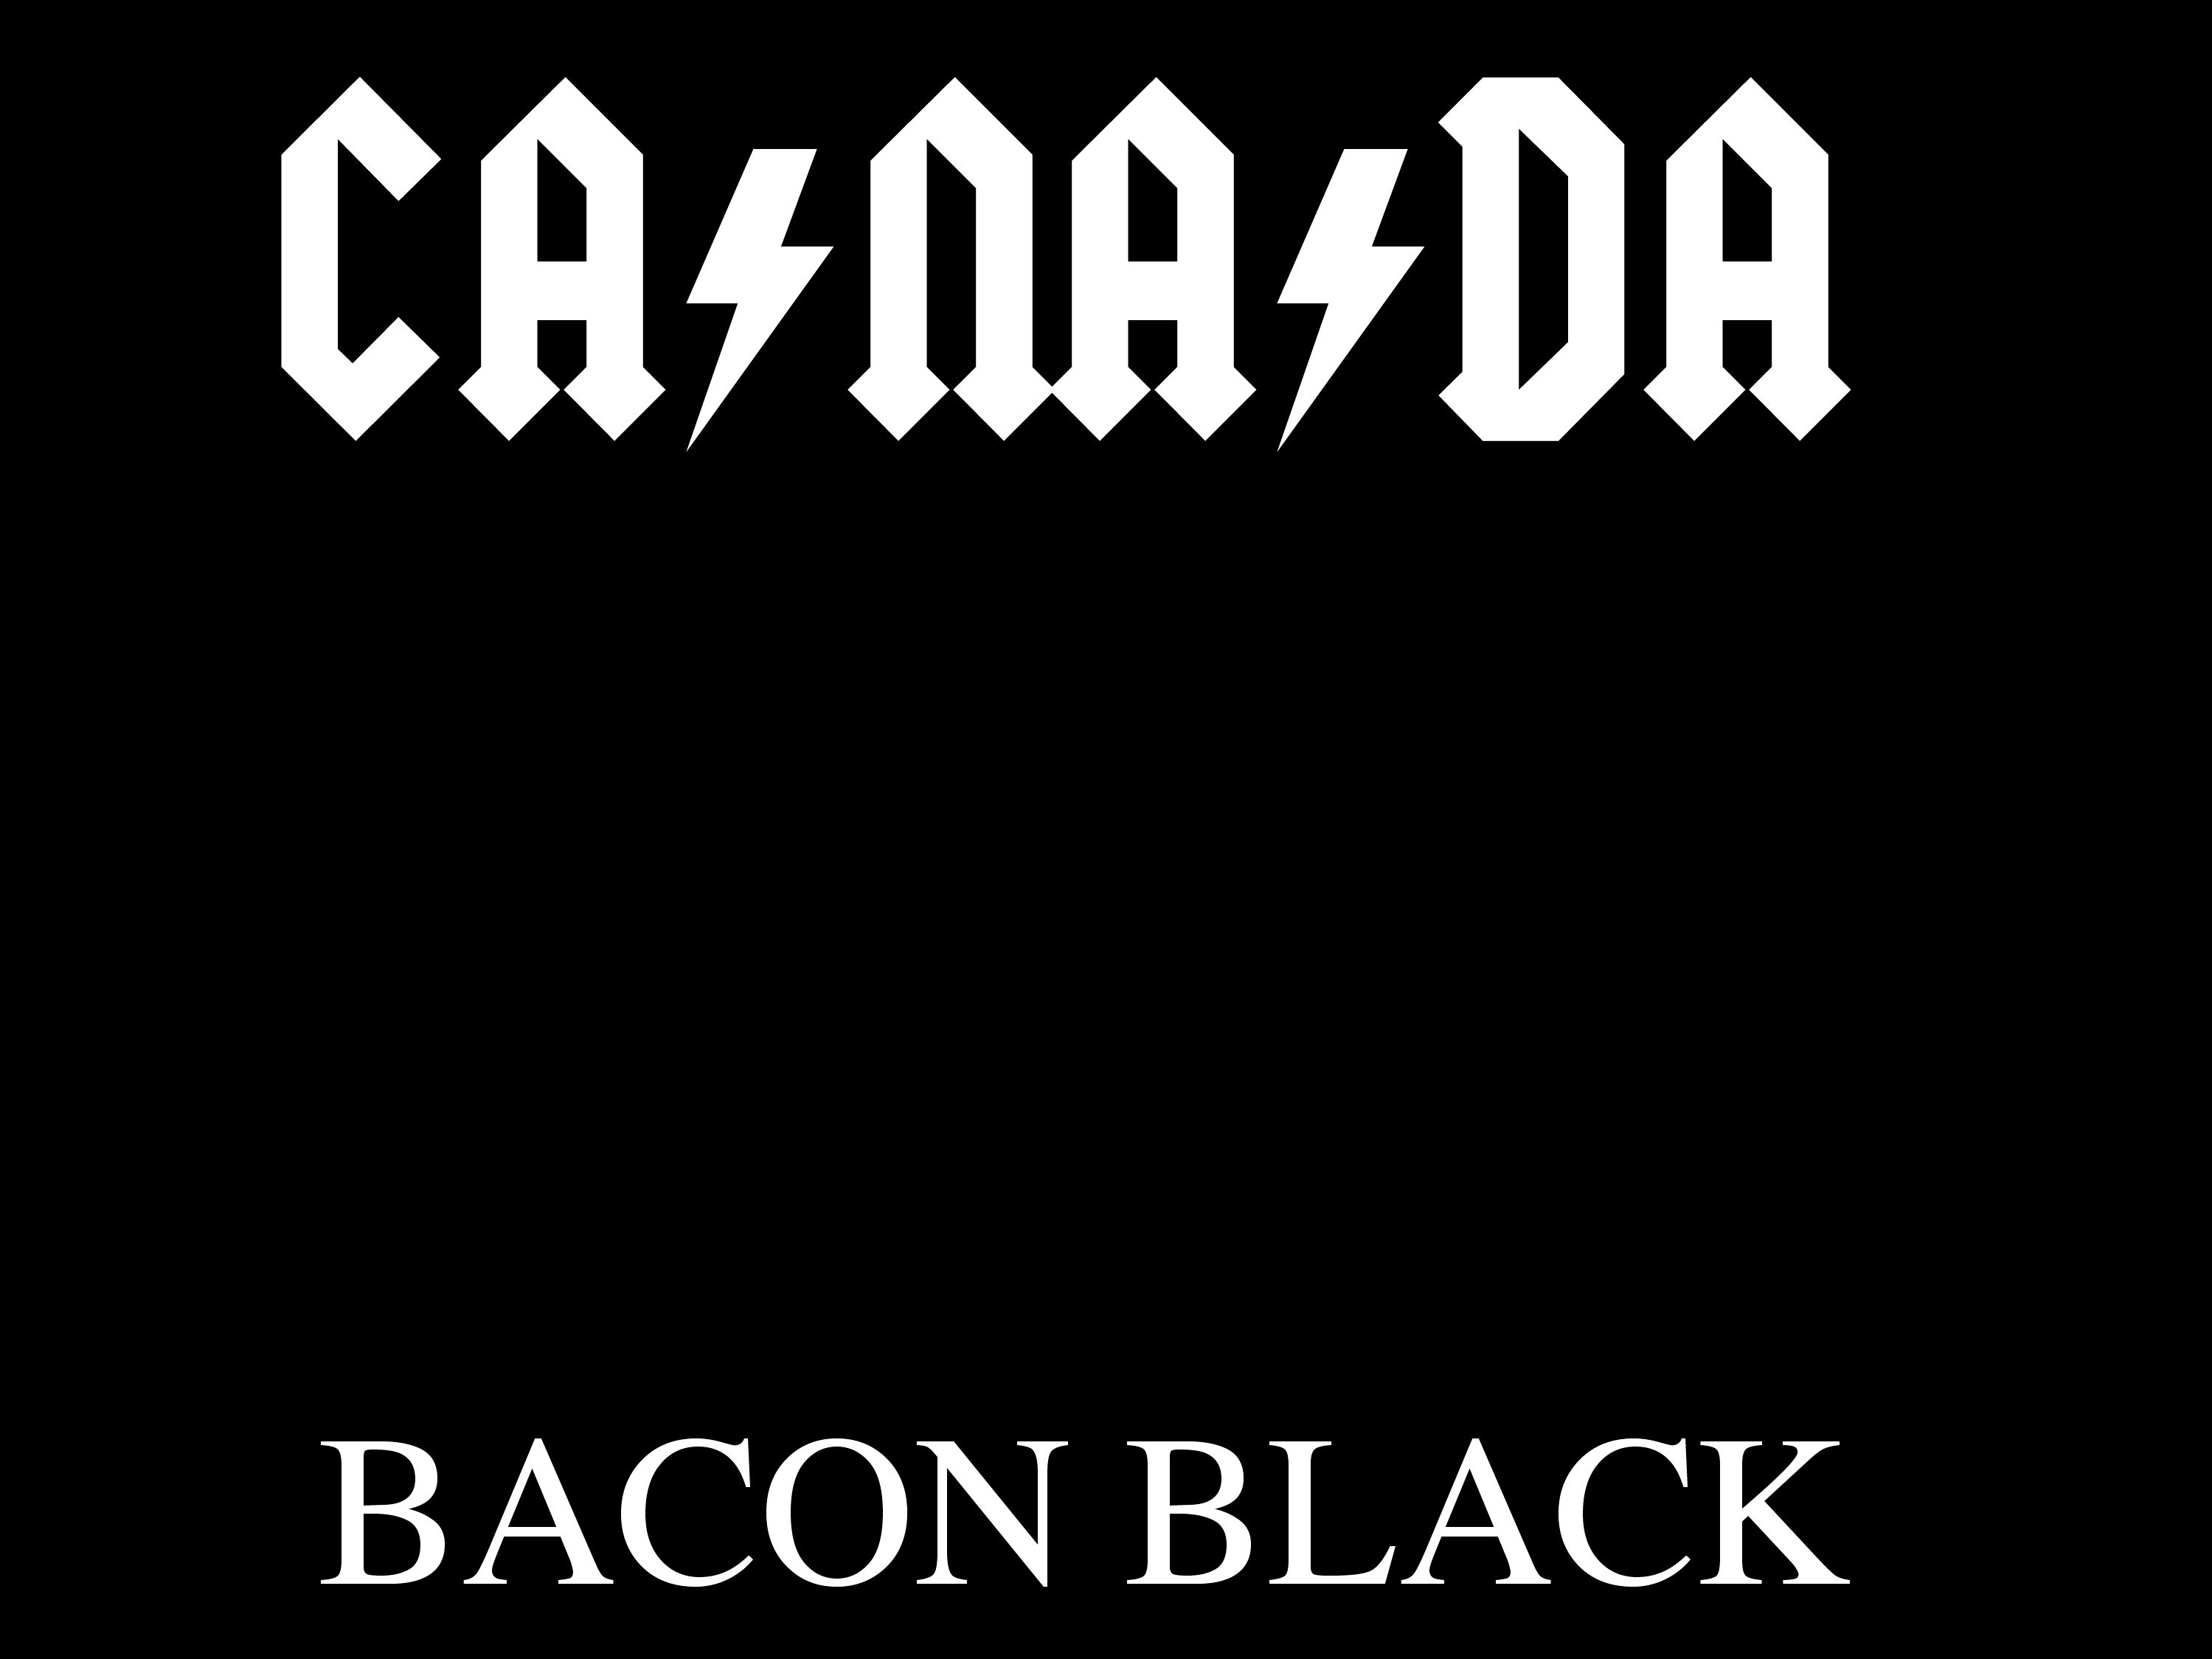 Bacon Black